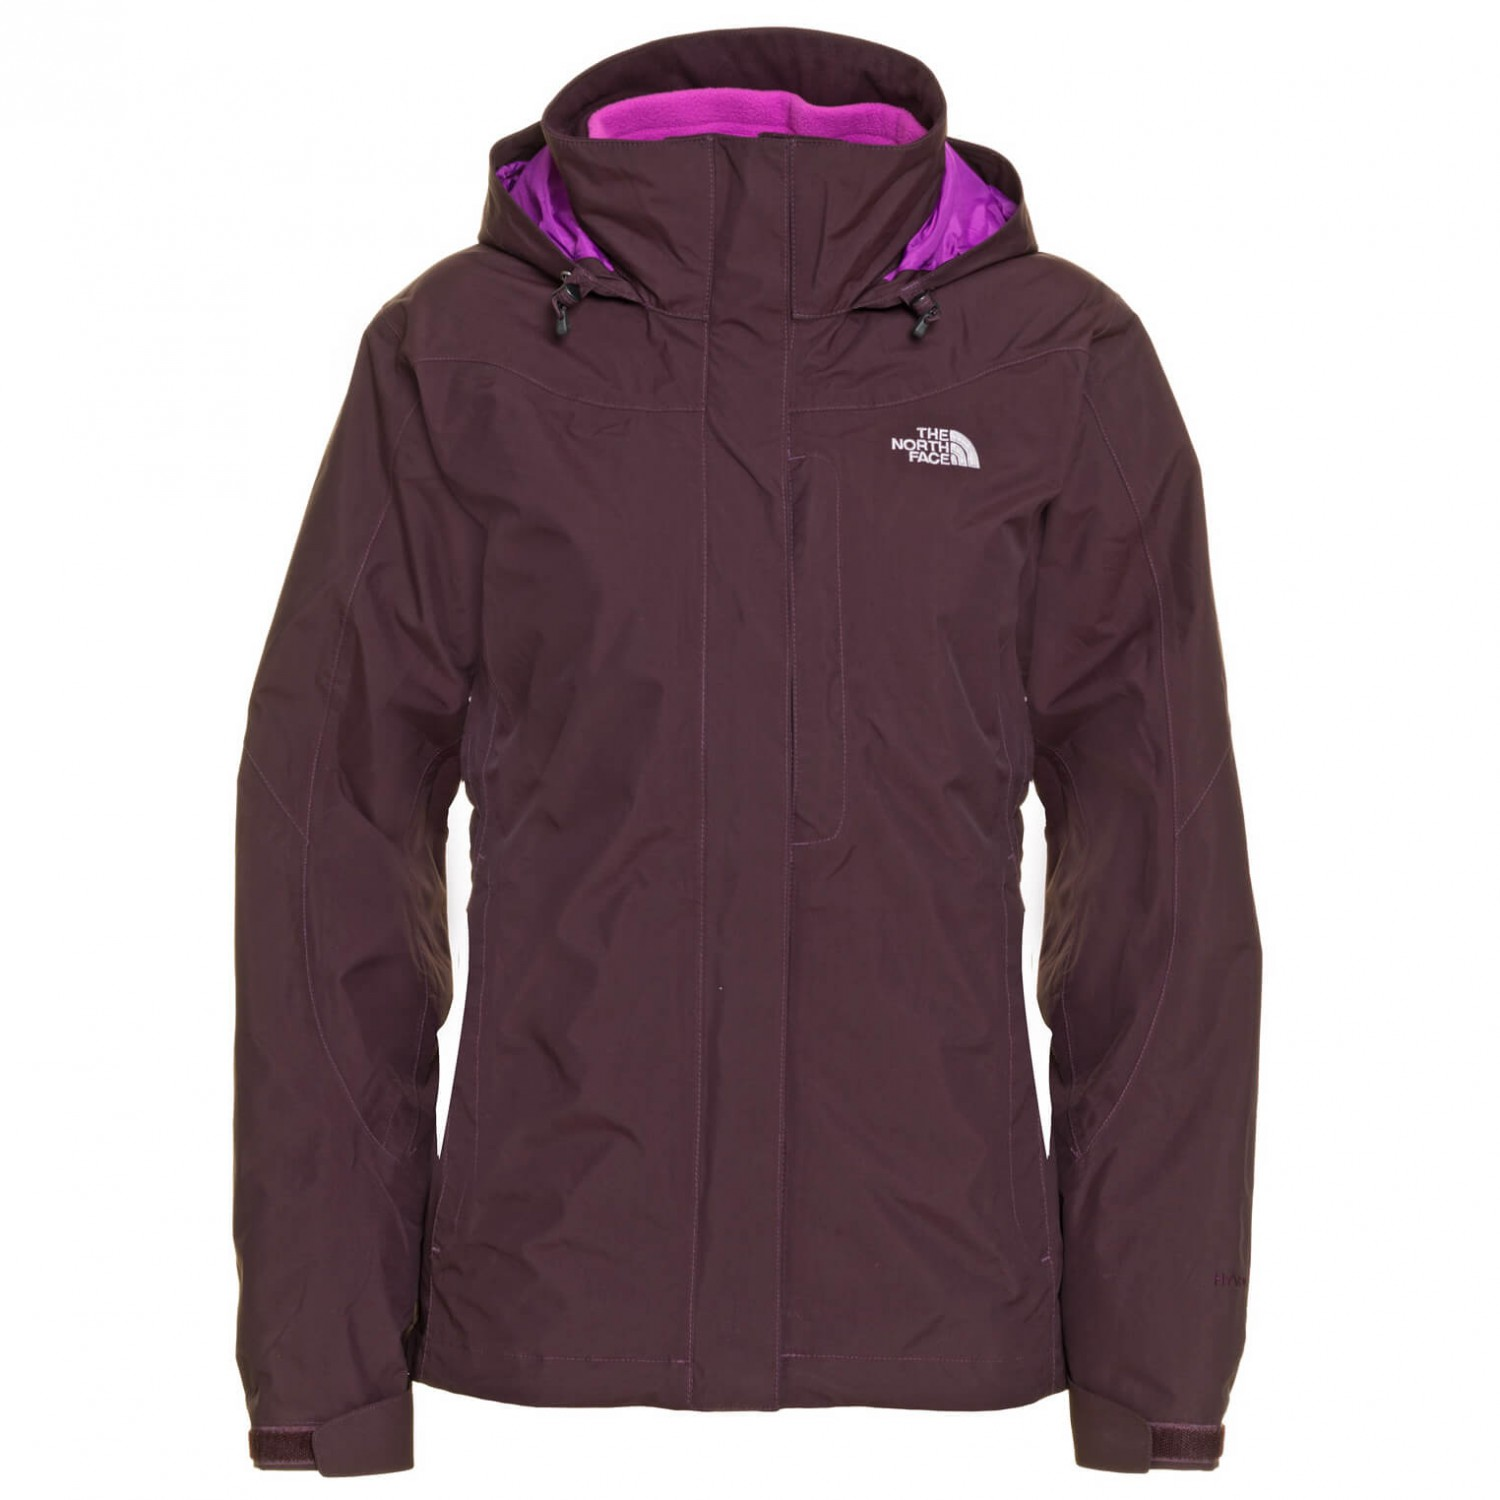 The North Face Women's Evolution TriClimate Jacket 3 in 1 jacket